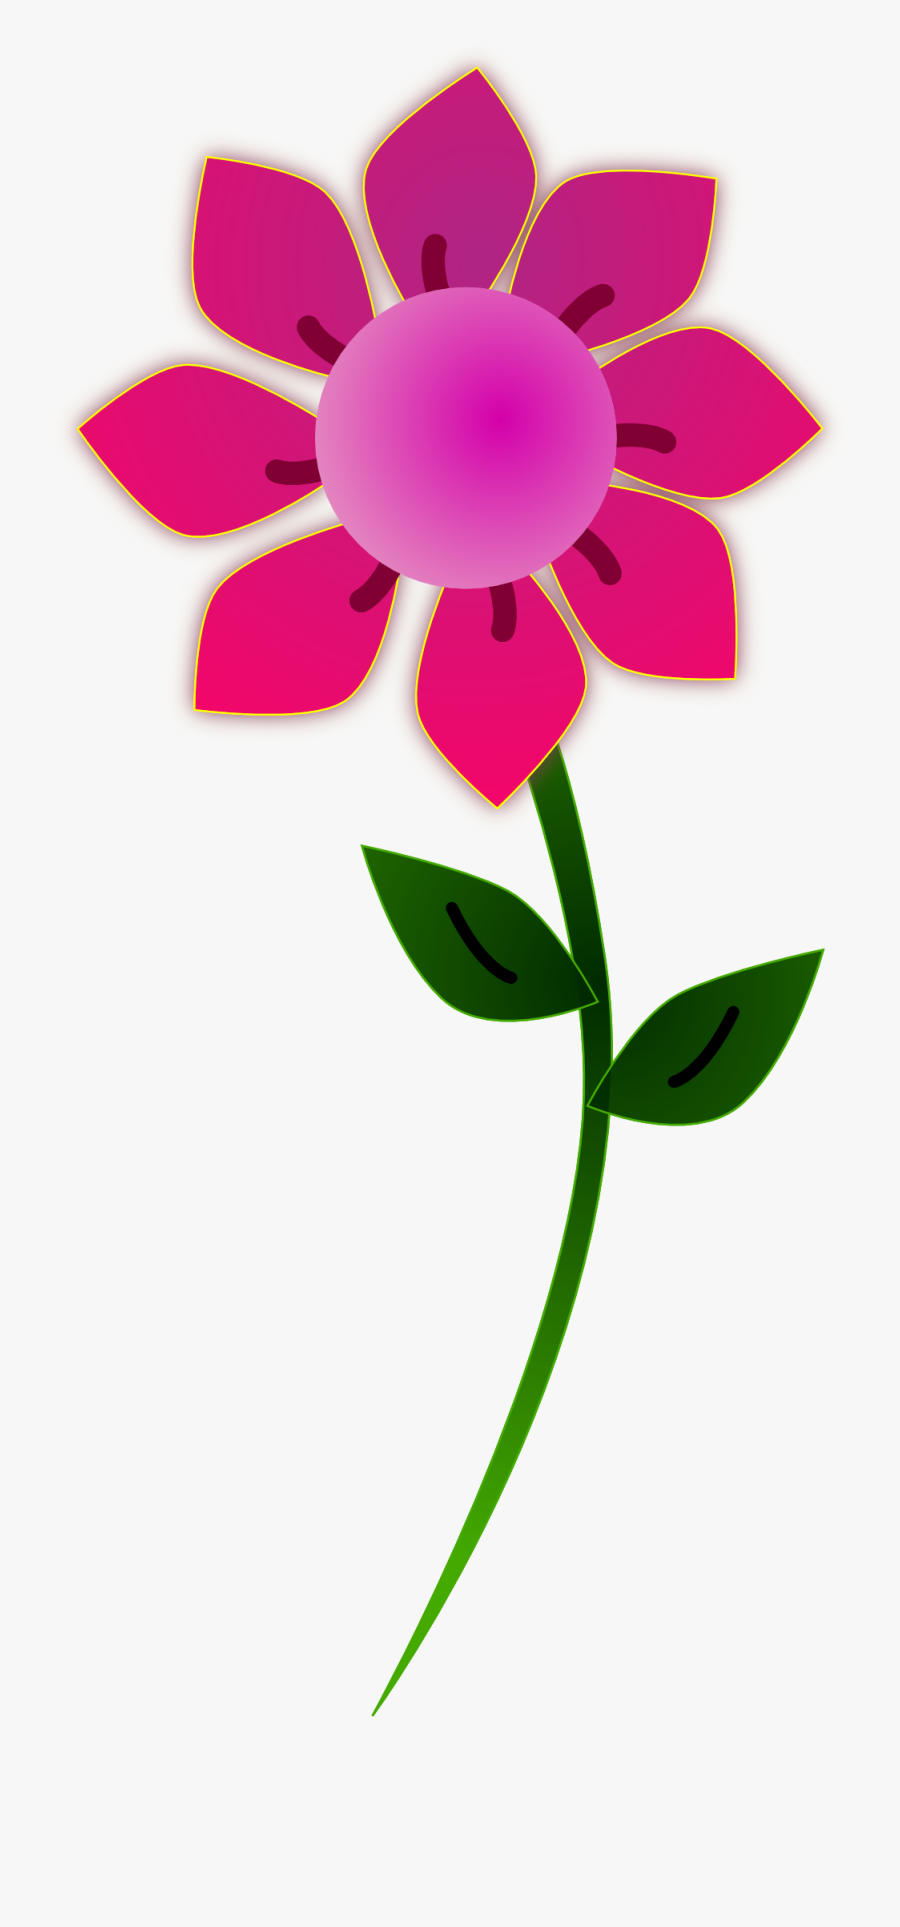 Free Flower Clip Art Graphics Of Flowers For Layouts - Single Flower Clip Art, Transparent Clipart